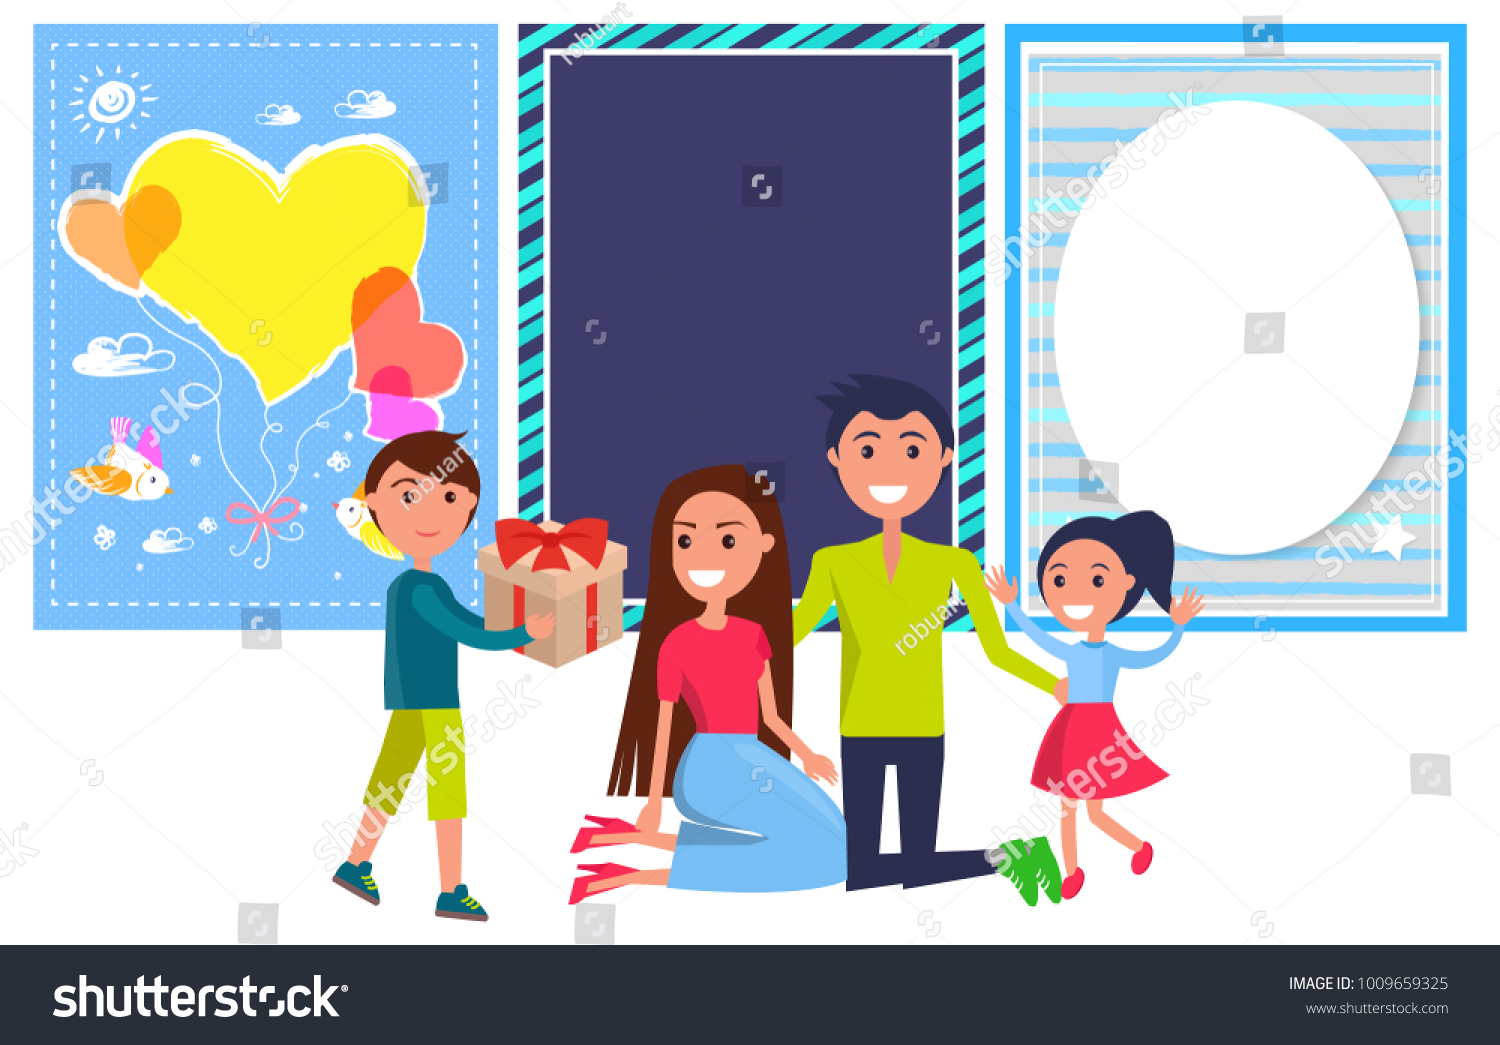 Royalty Free Stock Illustration Of Happy Friendship Day Banner